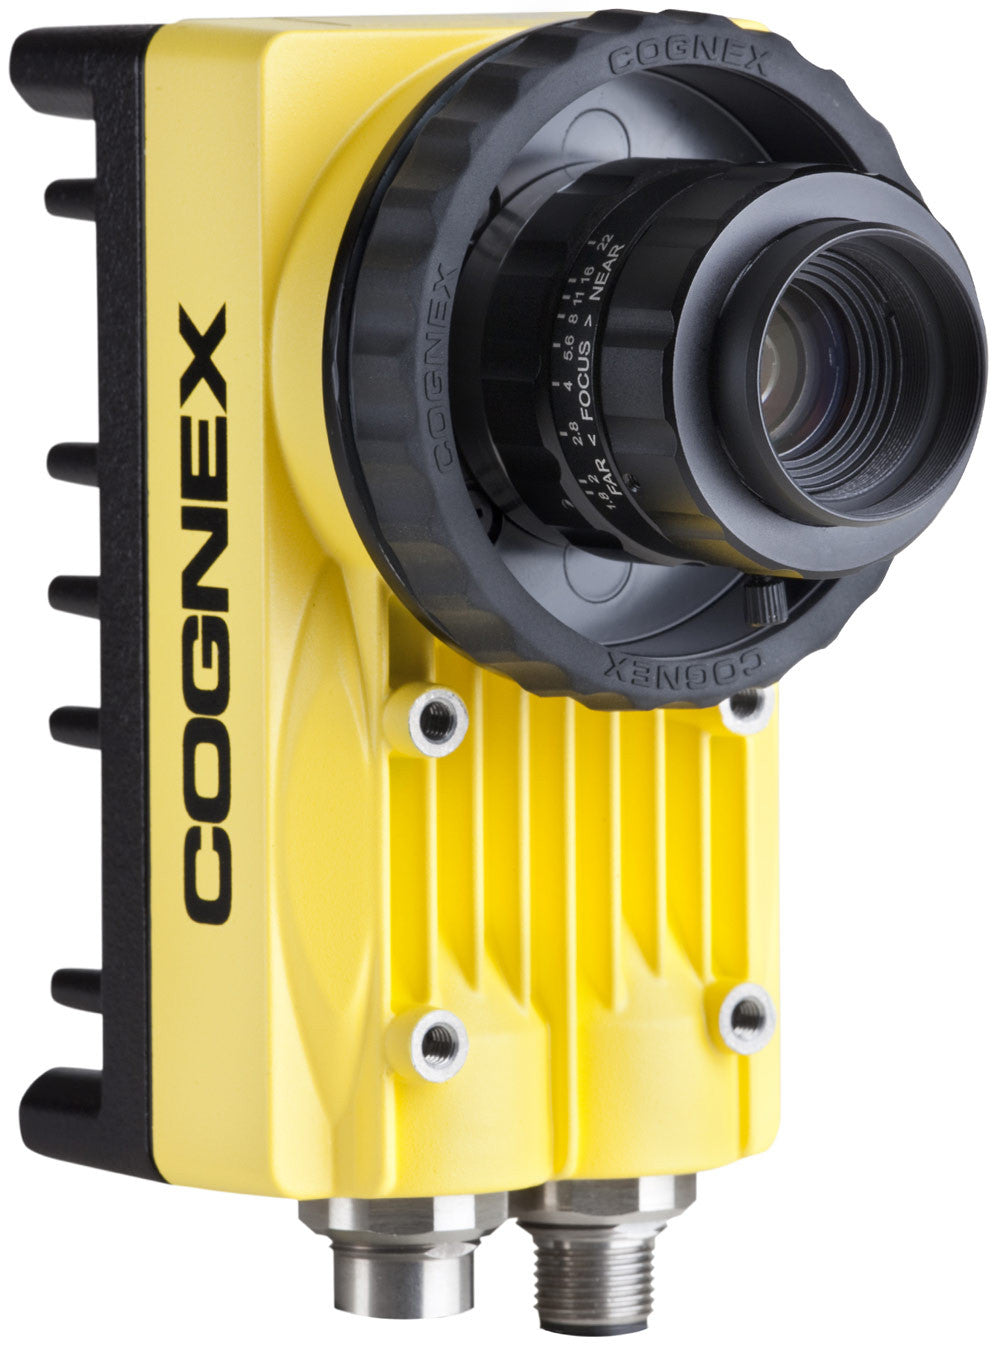 Photo of Cognex IS5603-11 In-Sight With PatMax Machine Vision Camera 5603-11 5603